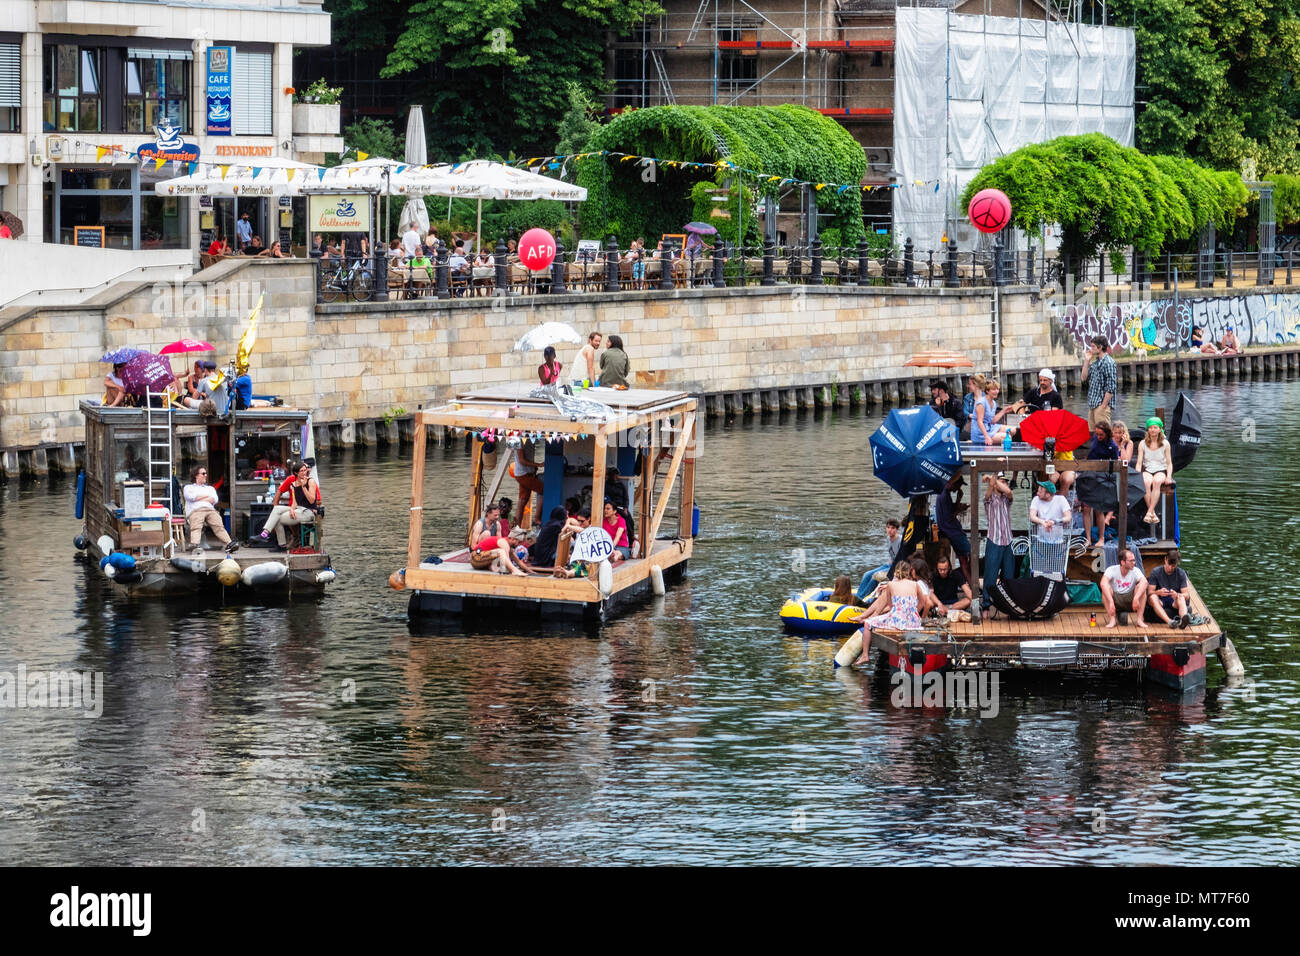 Germany,Berlin-Mitte, 27th May 2017. Anti AfD boat protest on the river Spree to counter nation-wide AfD demo.                                         - Stock Image